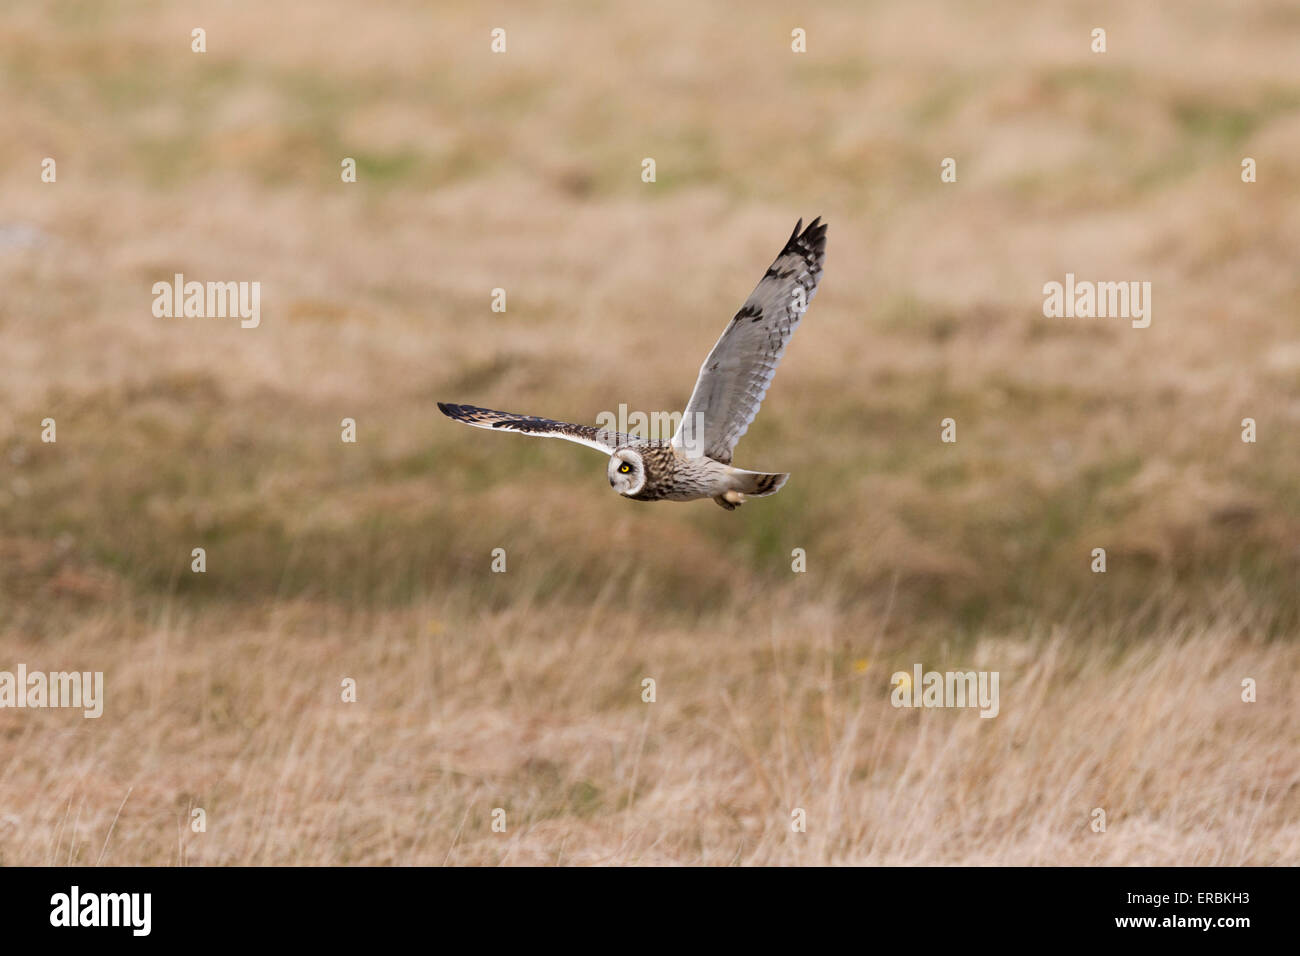 Short-eared Owl Asio flammeus, hunting in flight over grassland, North Uist, Outer Hebrides, Scotland, UK. - Stock Image